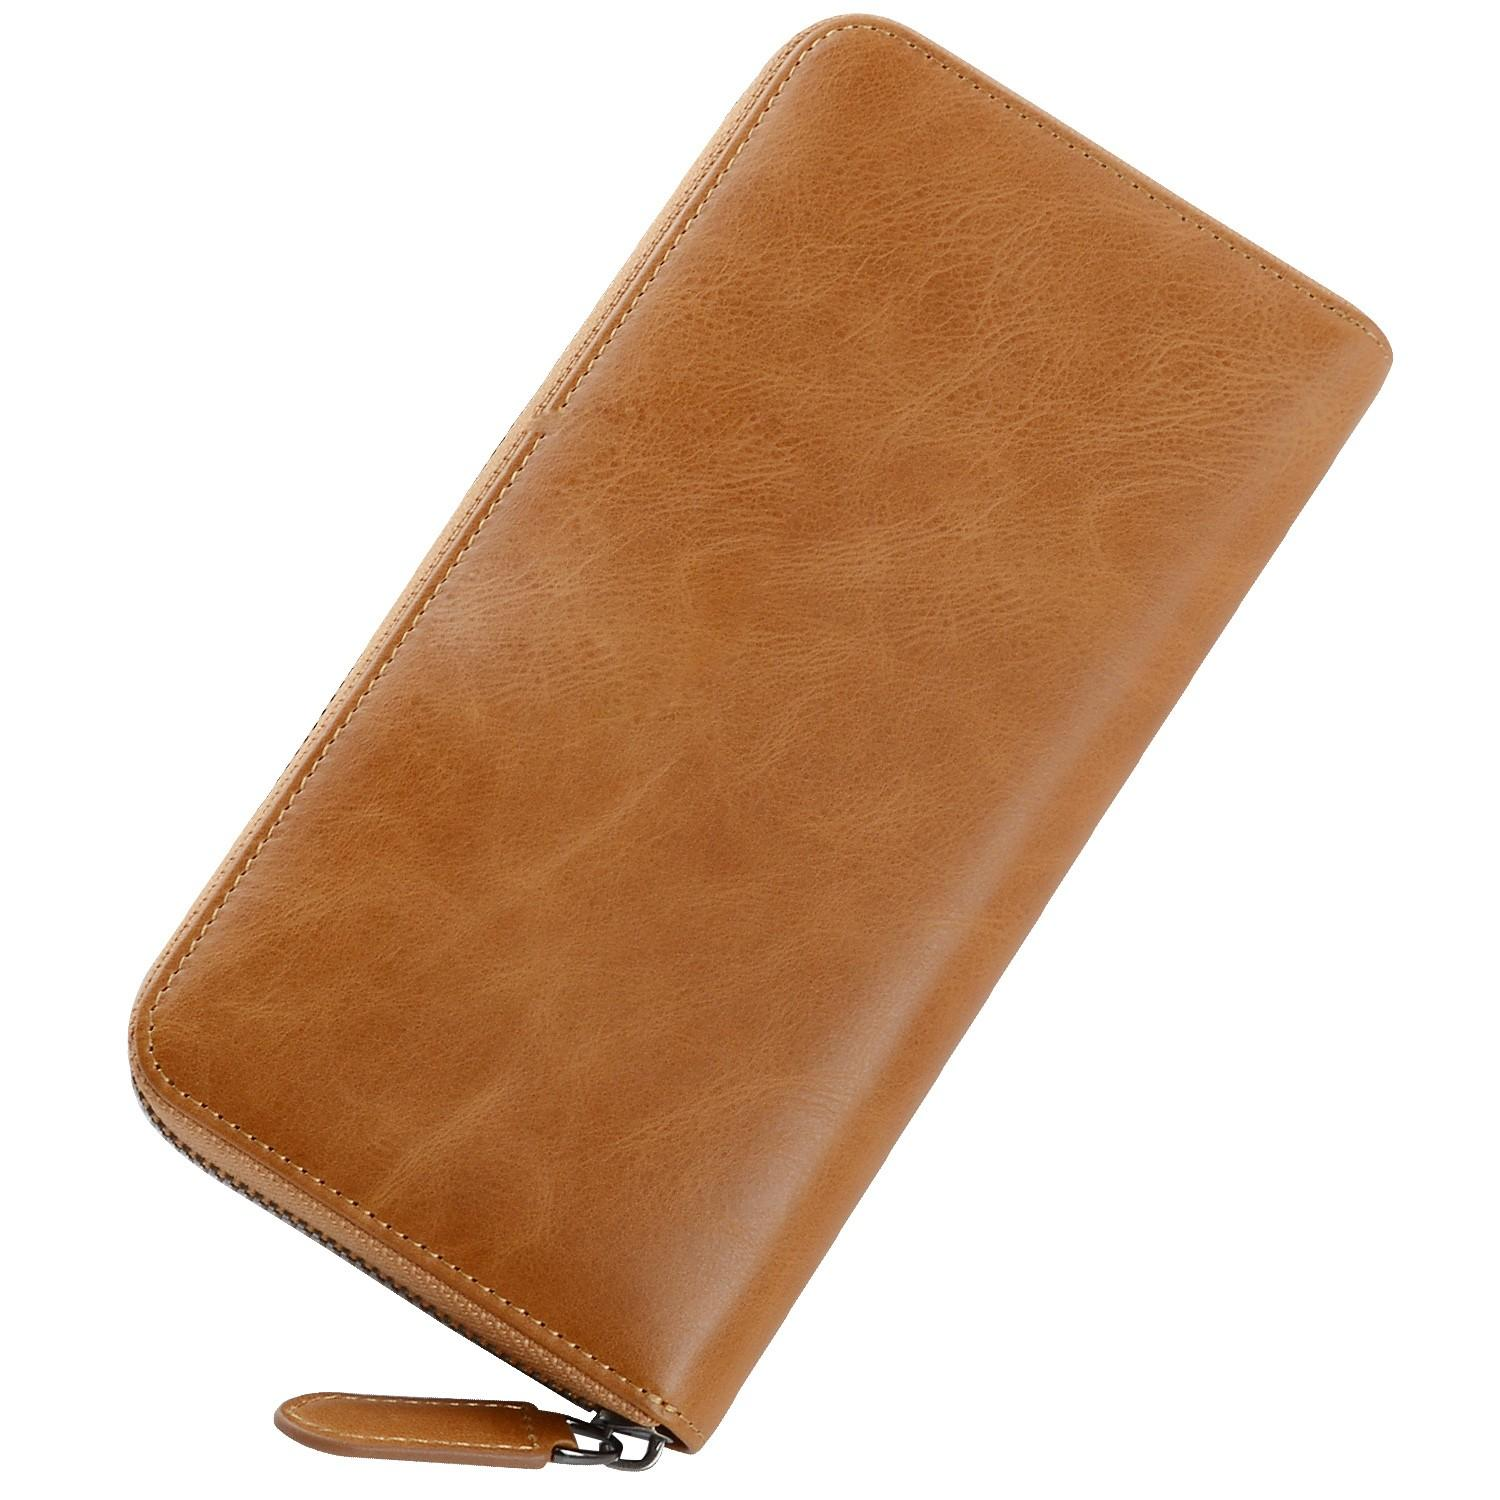 AIVI mens leather wallet with coin pocket online for ipone 6/6plus